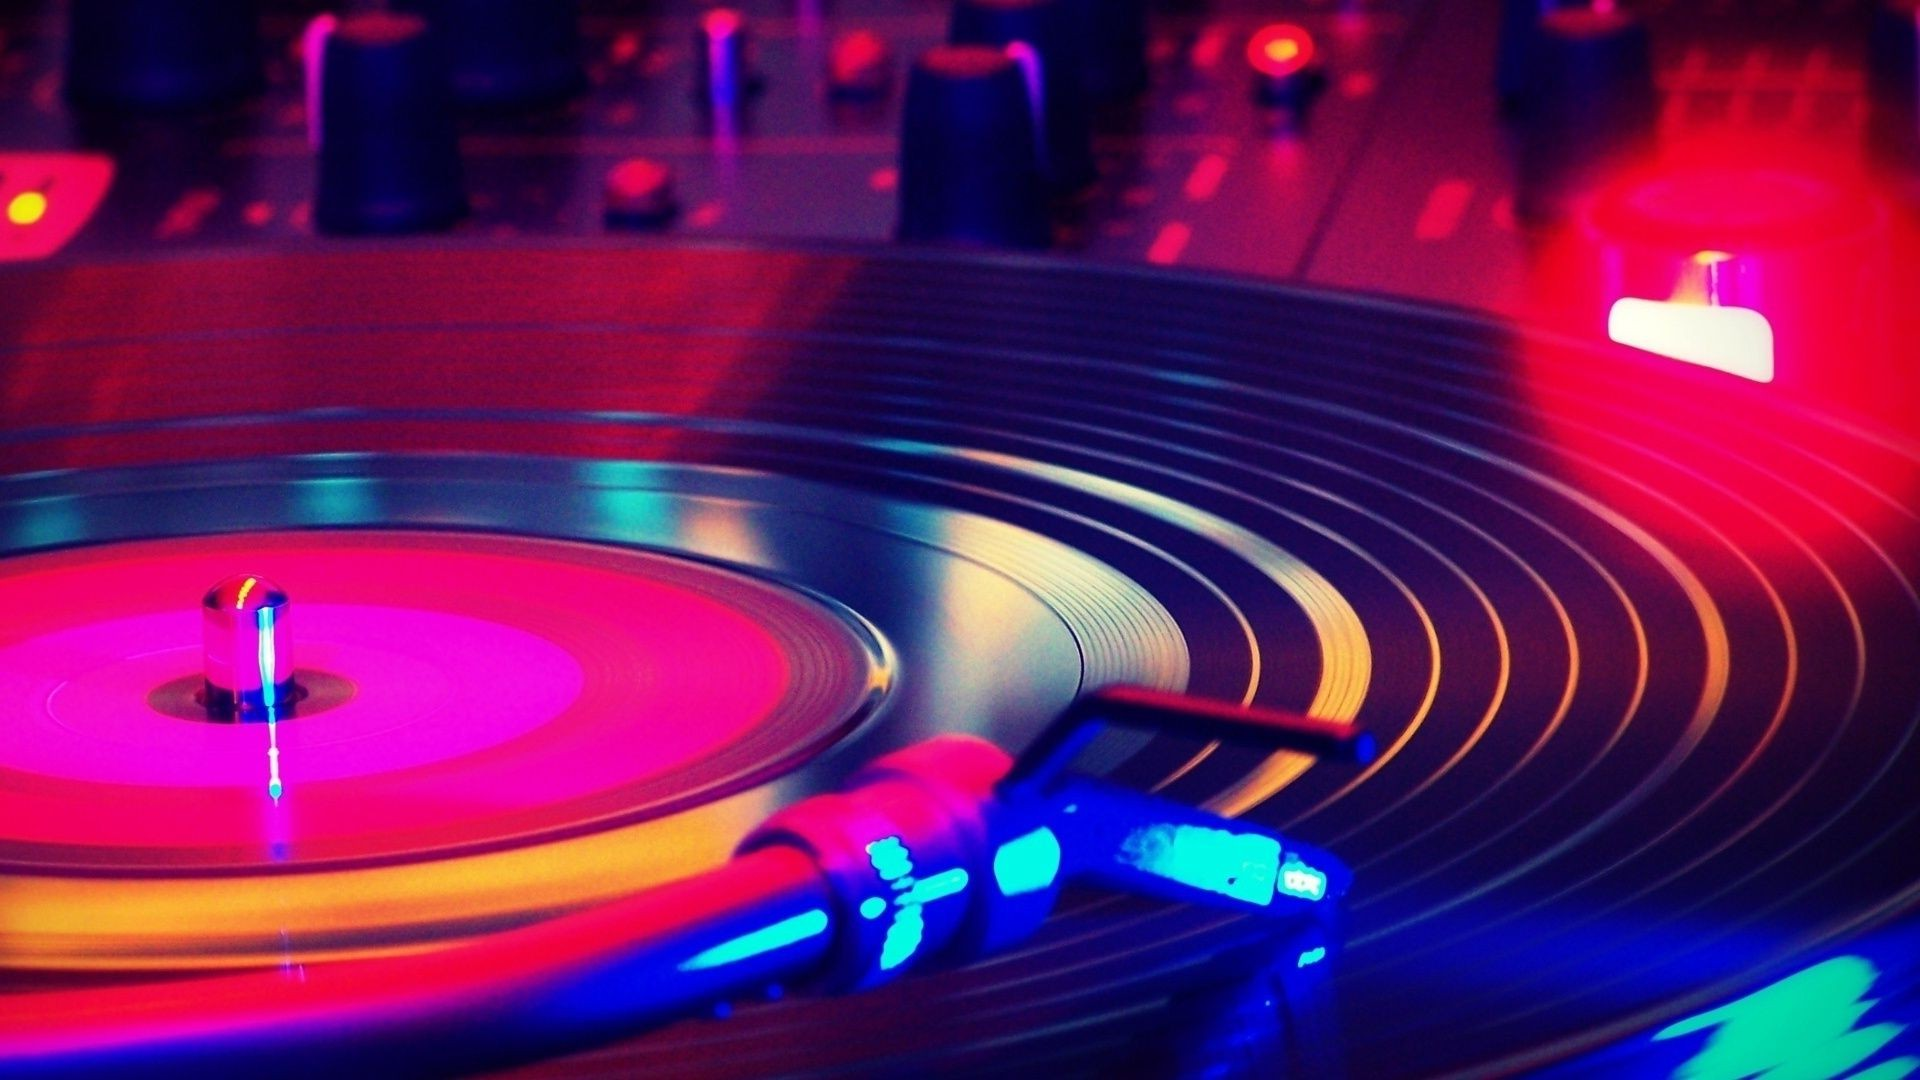 music phonograph record turntable vinyl sound disco deejay motion nightlife laser club round technology data electronics stereo